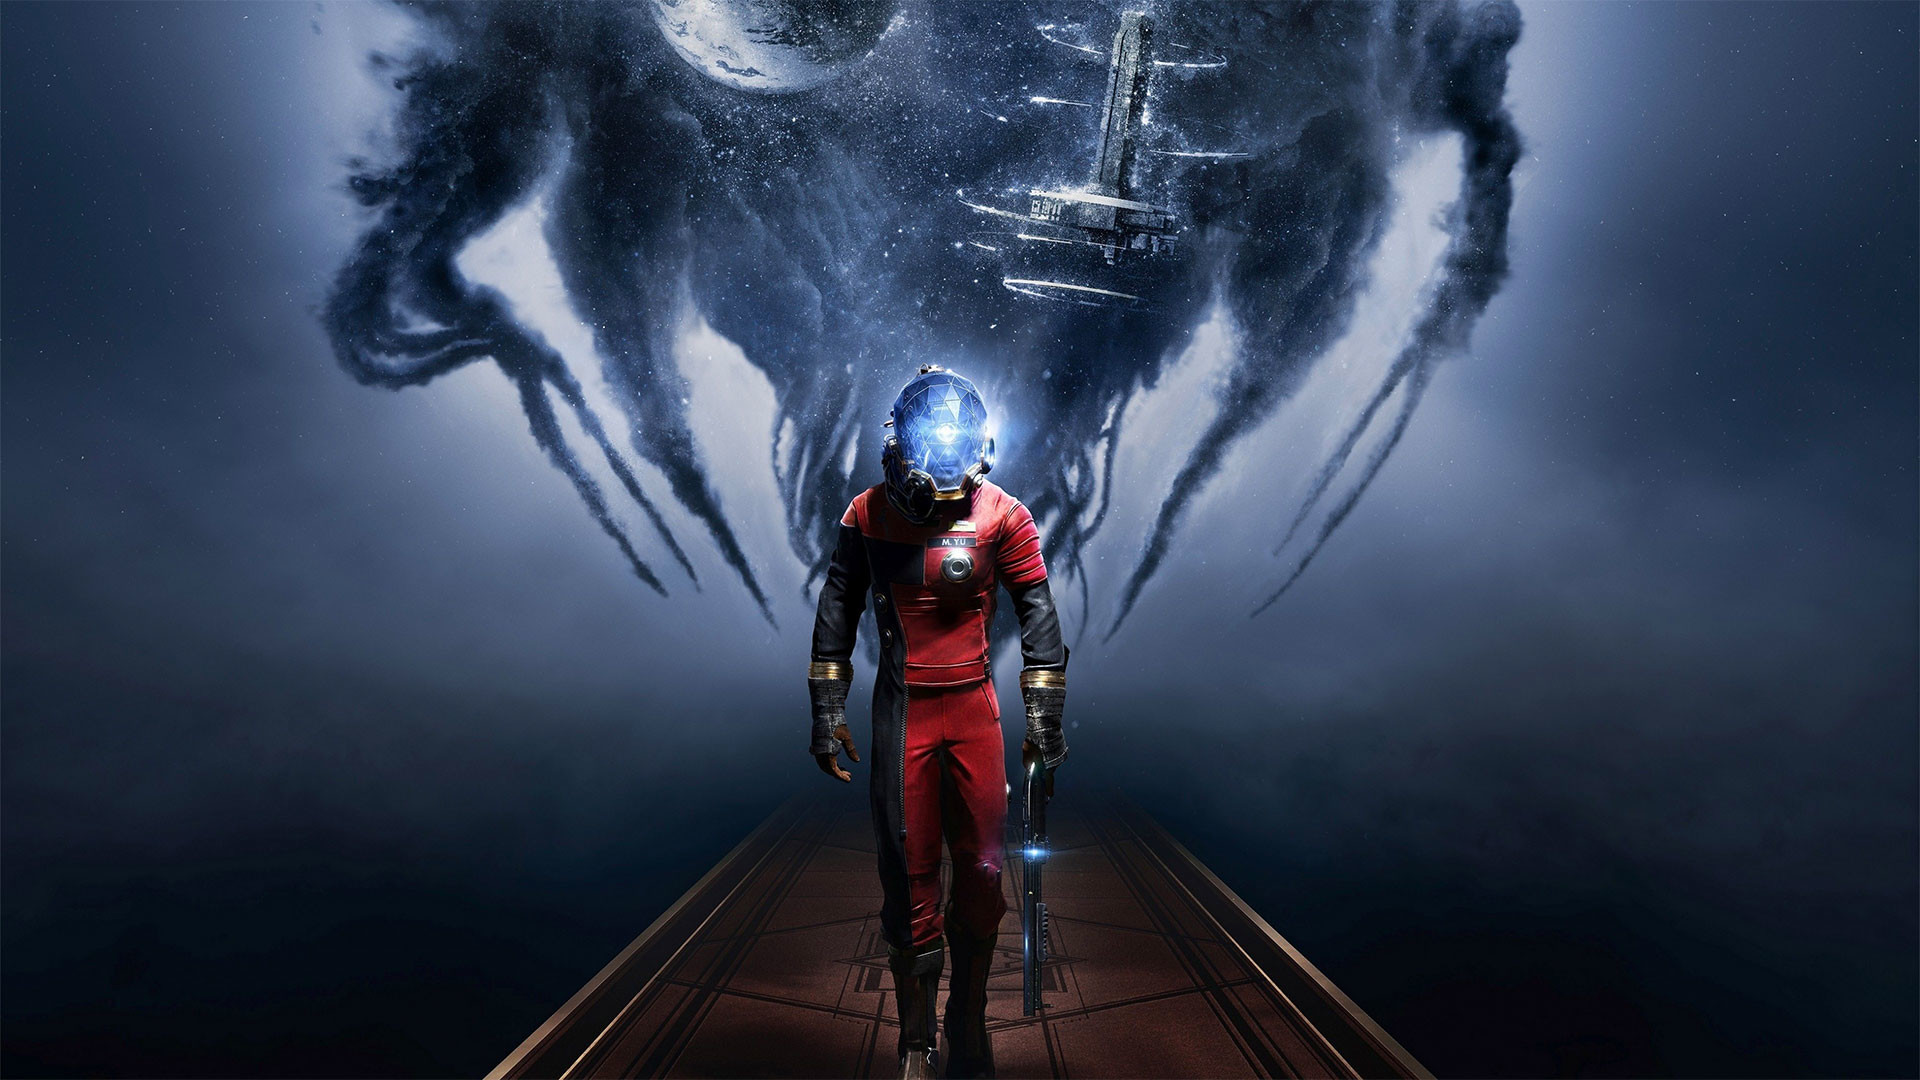 1920x1080 Prey 4K Wallpaper | Prey 1080p Wallpaper ...